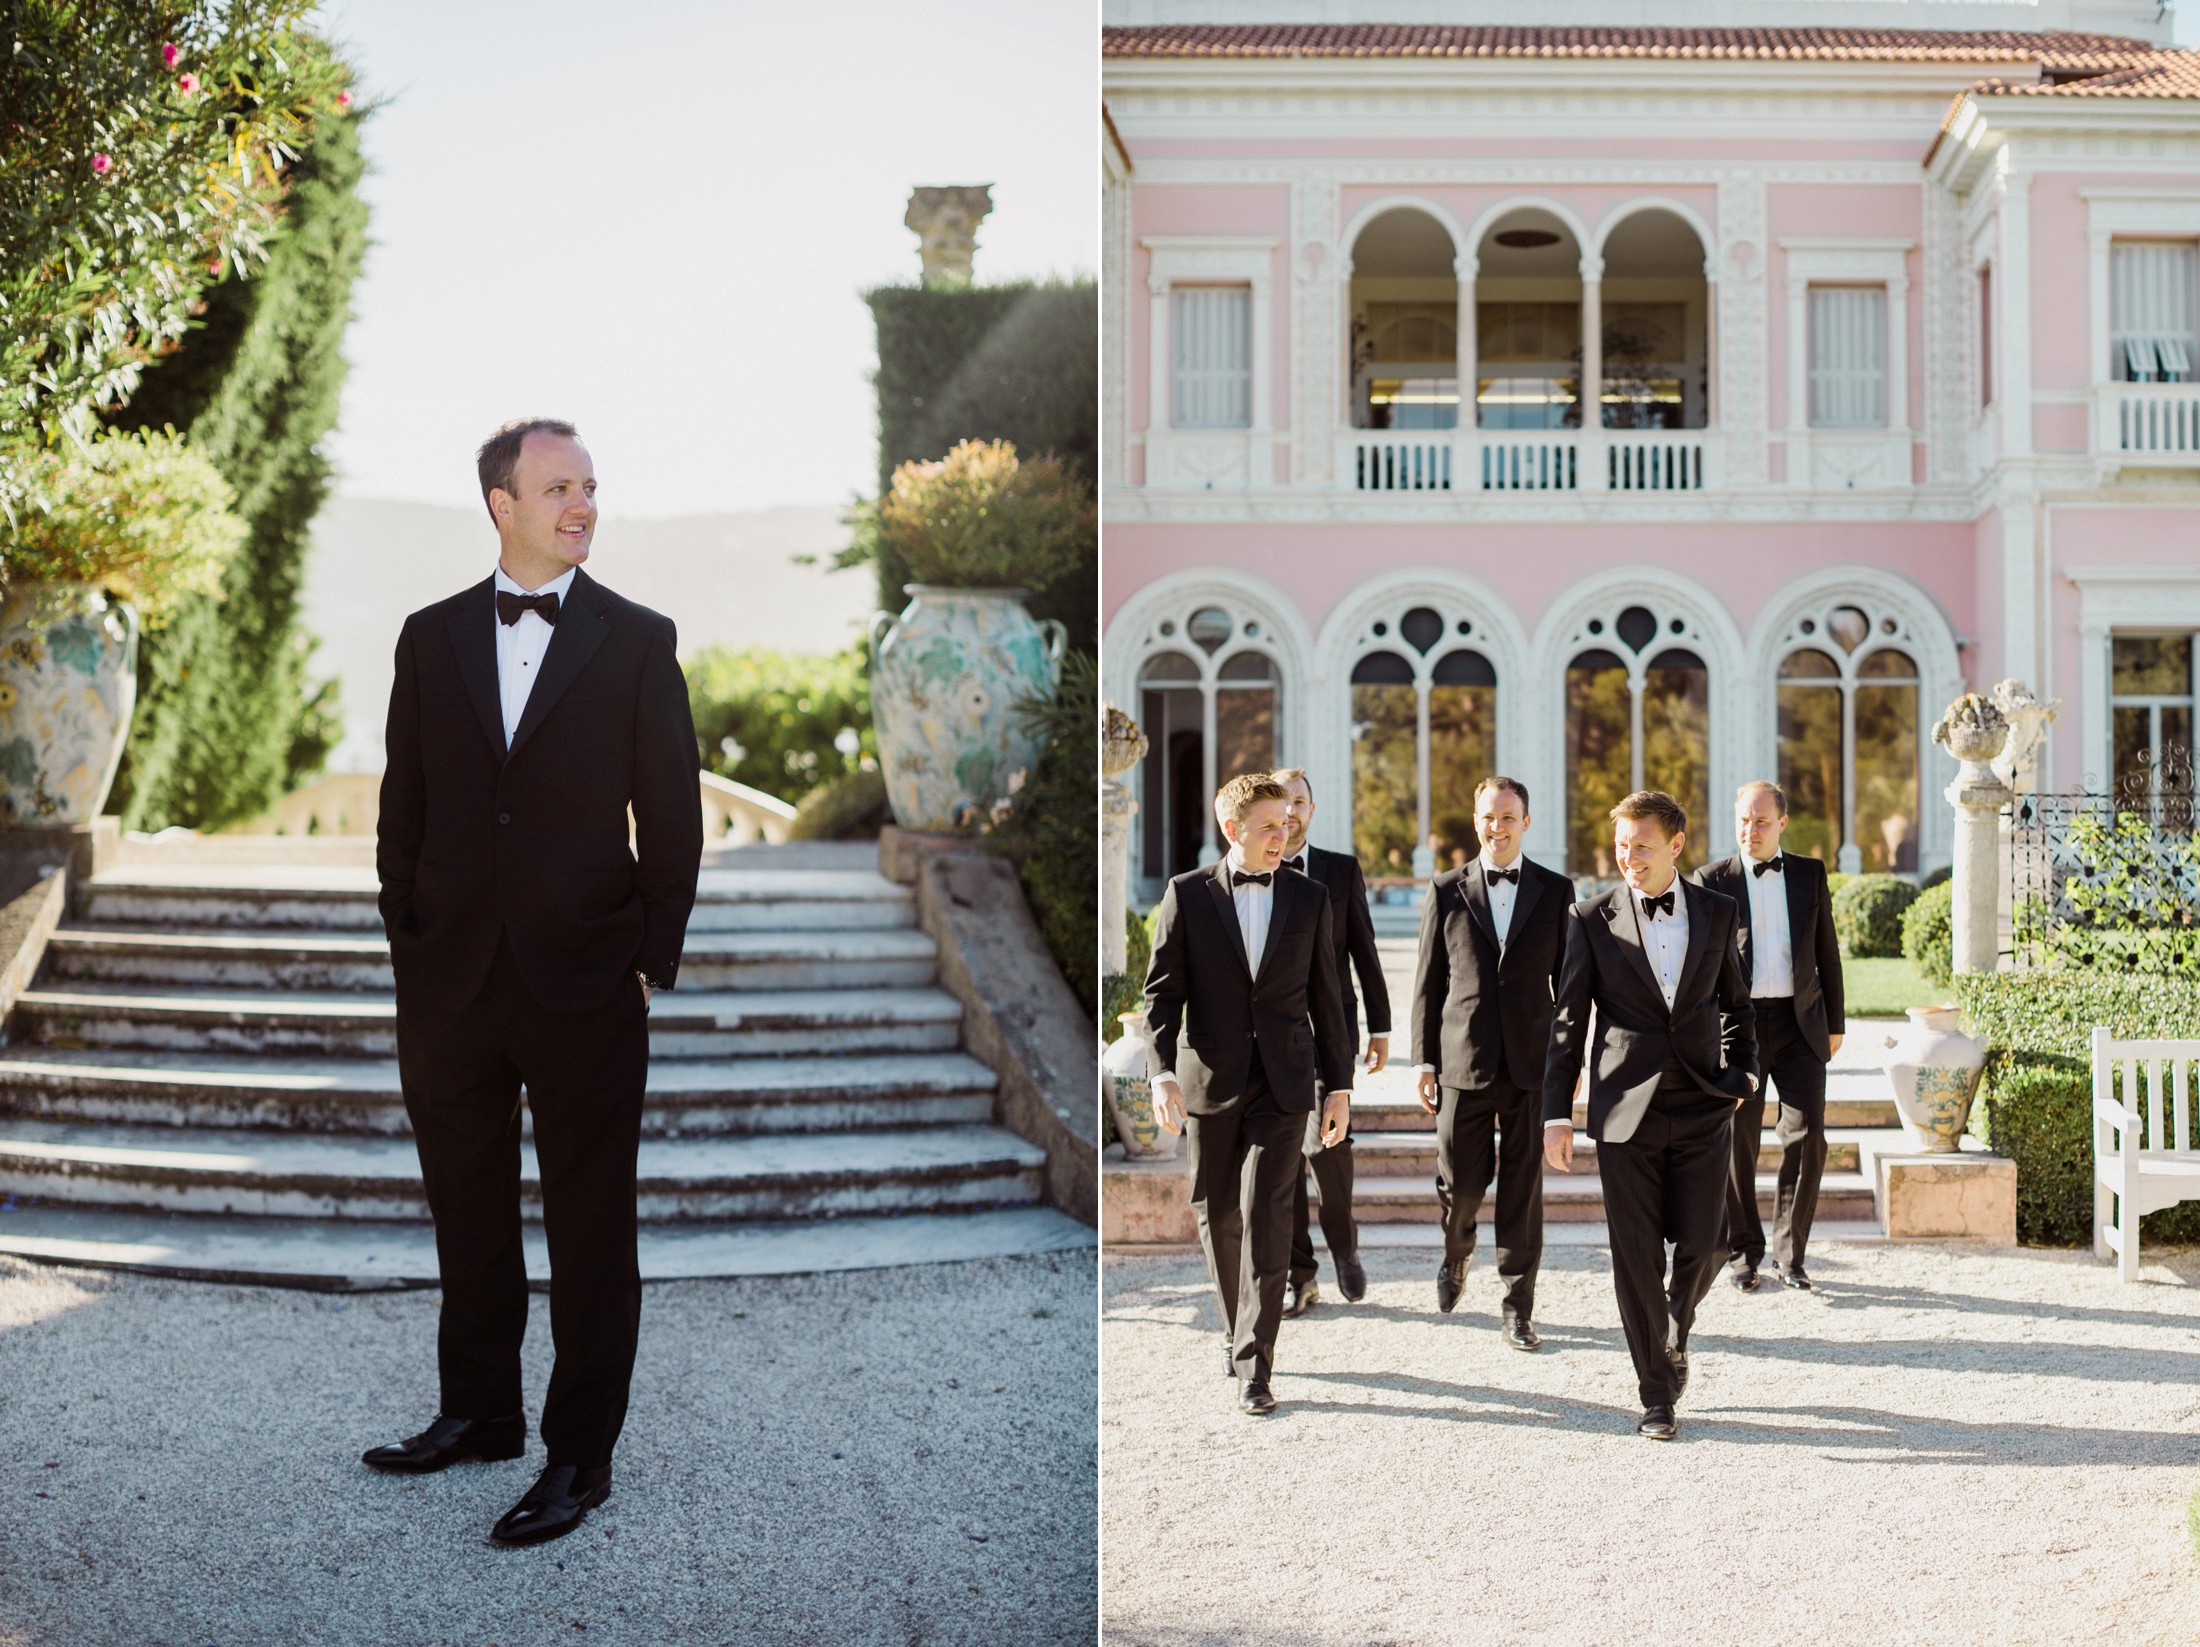 VILLA EPHRUSSI DE ROTHSCHILD - Caught The Light